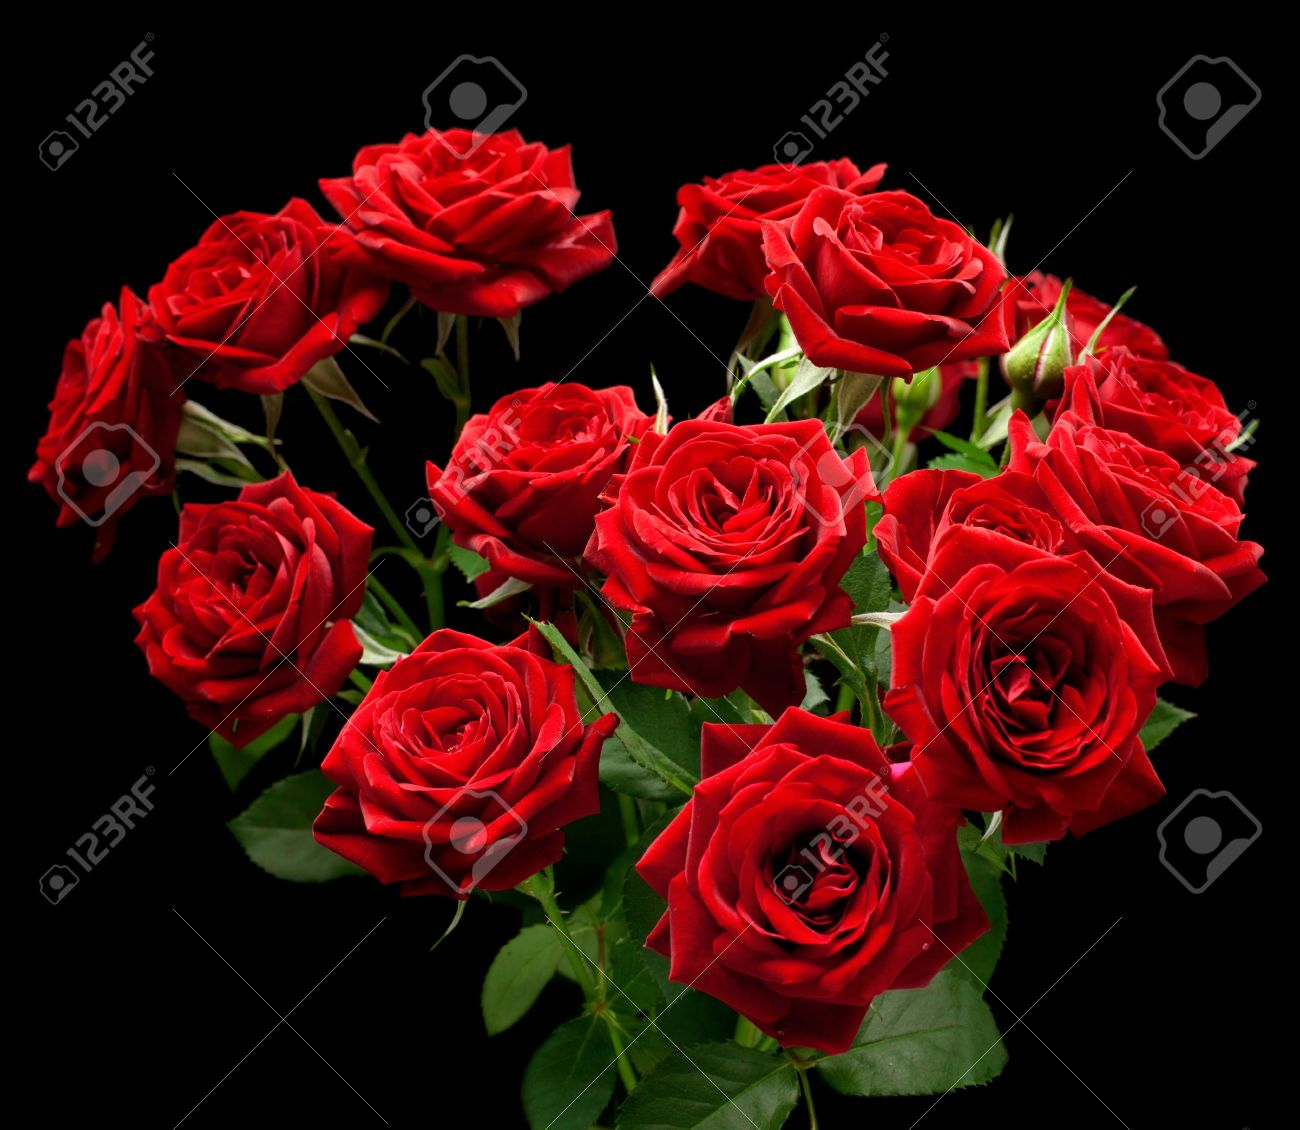 https://previews.123rf.com/images/coffeemill/coffeemill1304/coffeemill130400021/18943787-bouquet-of-red-small-roses-on-a-black-background-.jpg